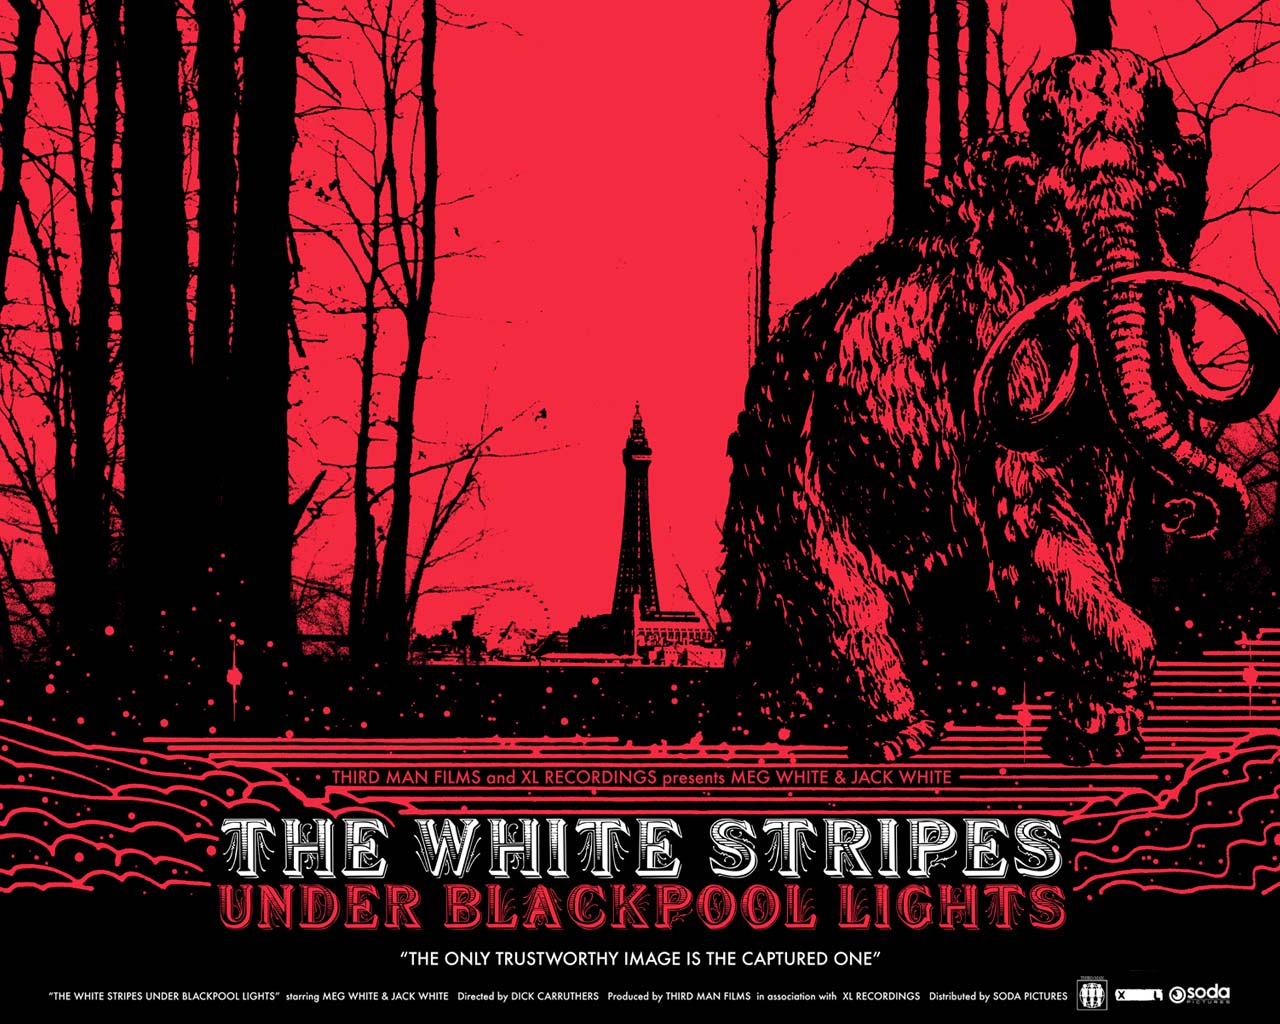 White Stripes Blackpool Lights Every Record Tells A Story